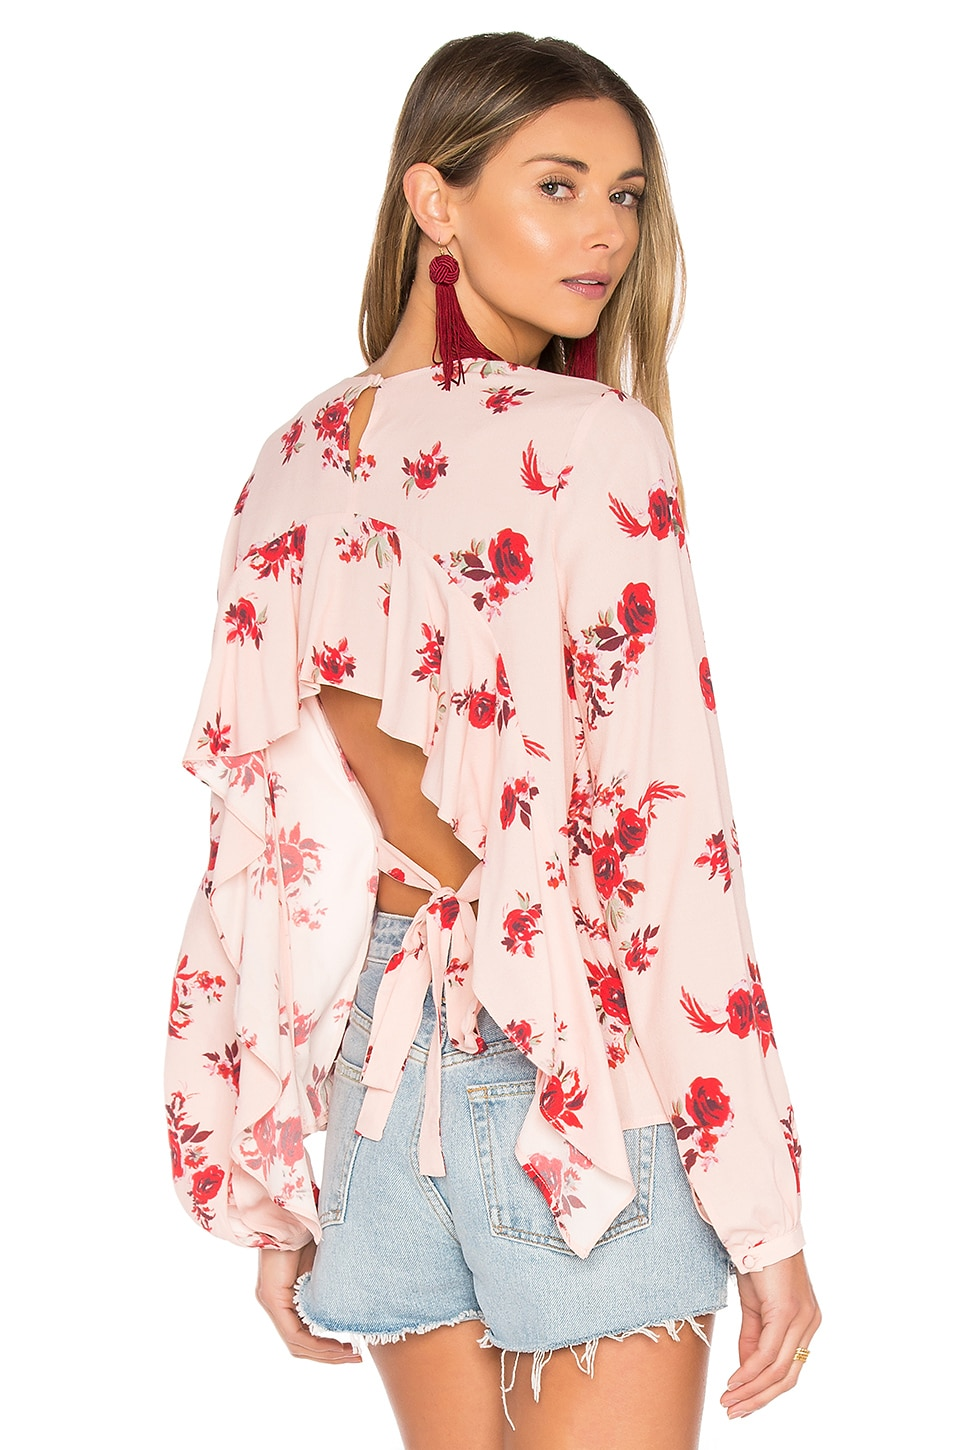 Lovers + Friends x REVOLVE Palisades Top in Blossom Print